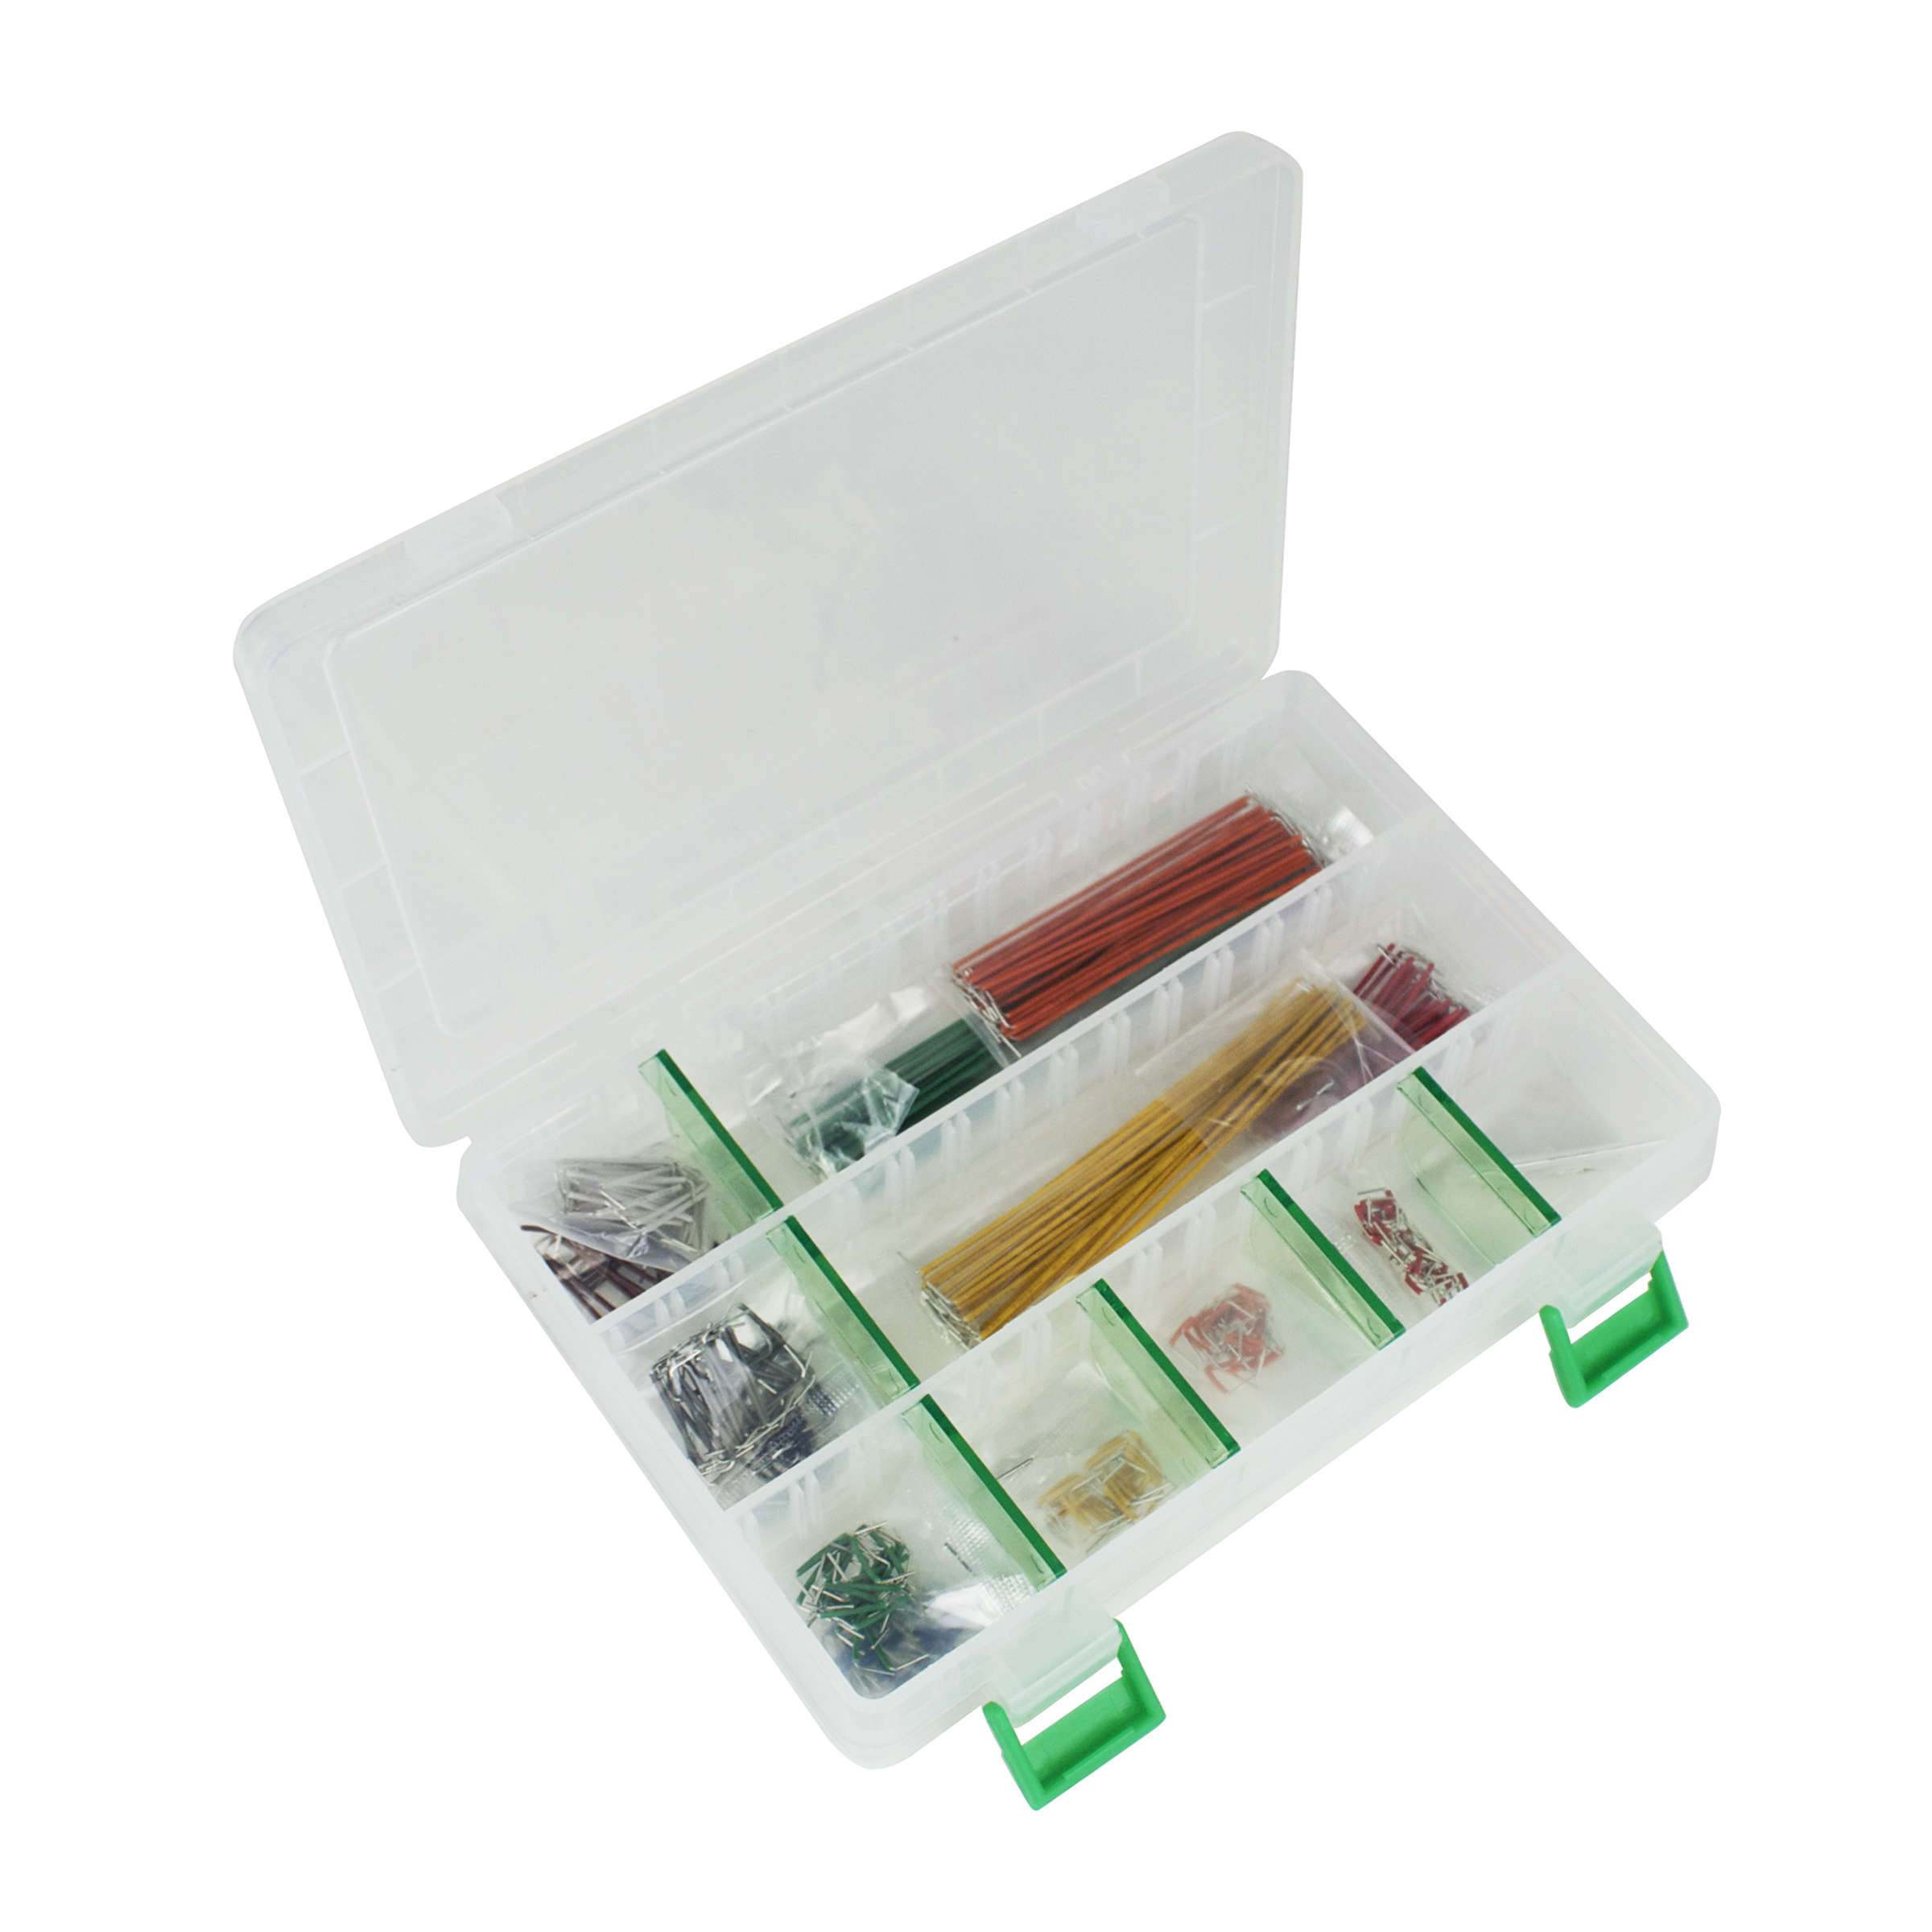 Click to preview image for the Global Specialties WK-1 Jumper Wire Kit, 350 Pcs